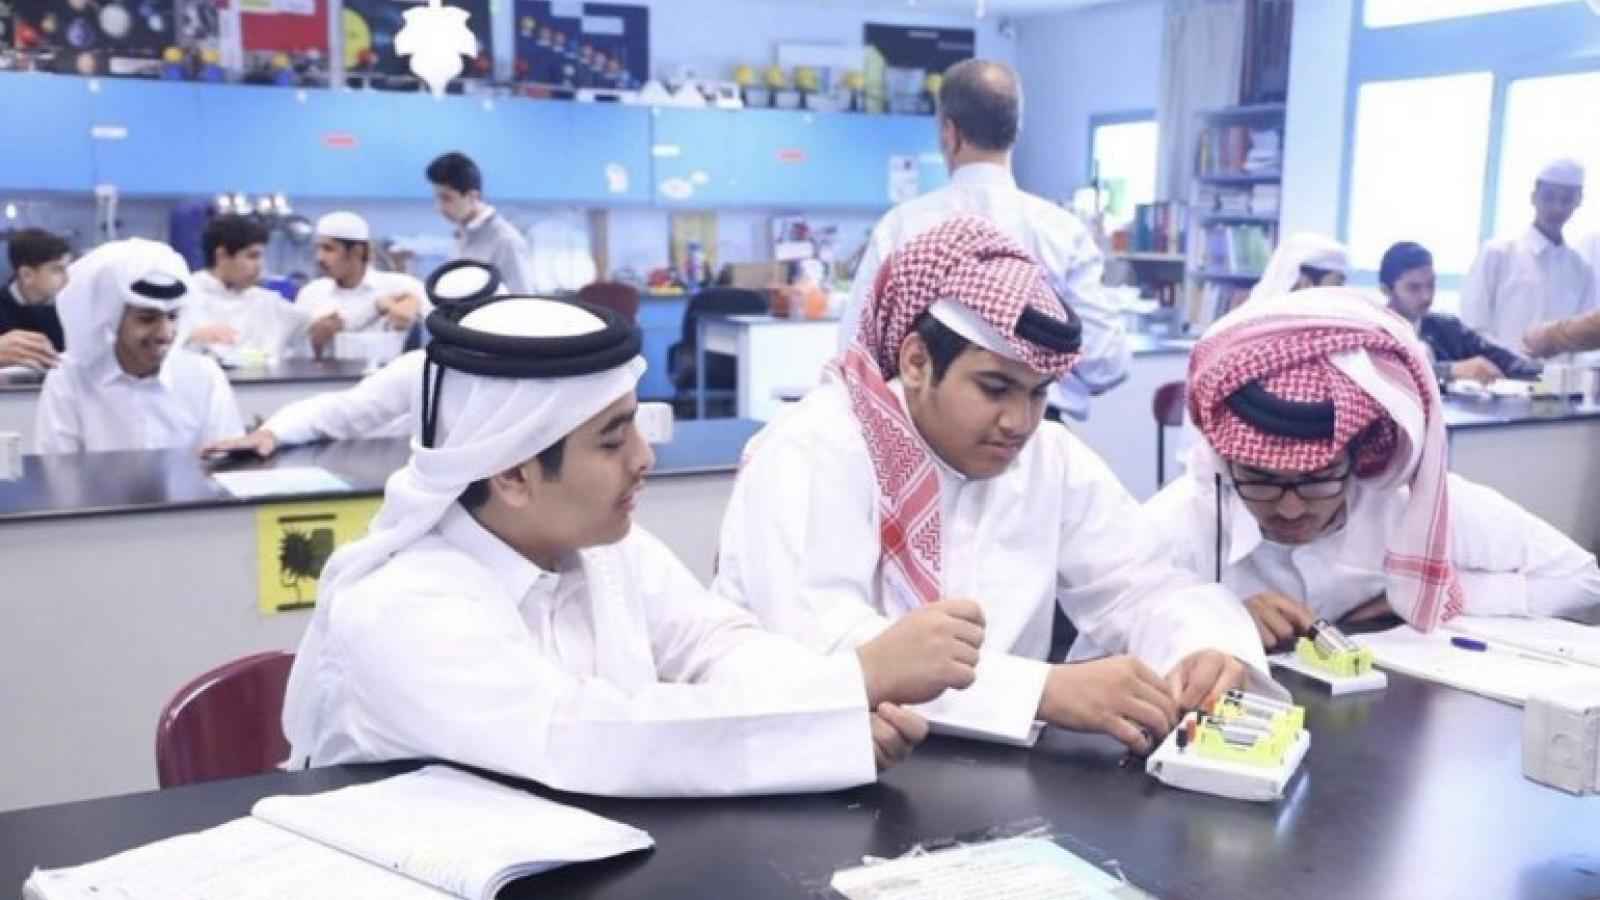 Over 7,300 students apply for early government school registration